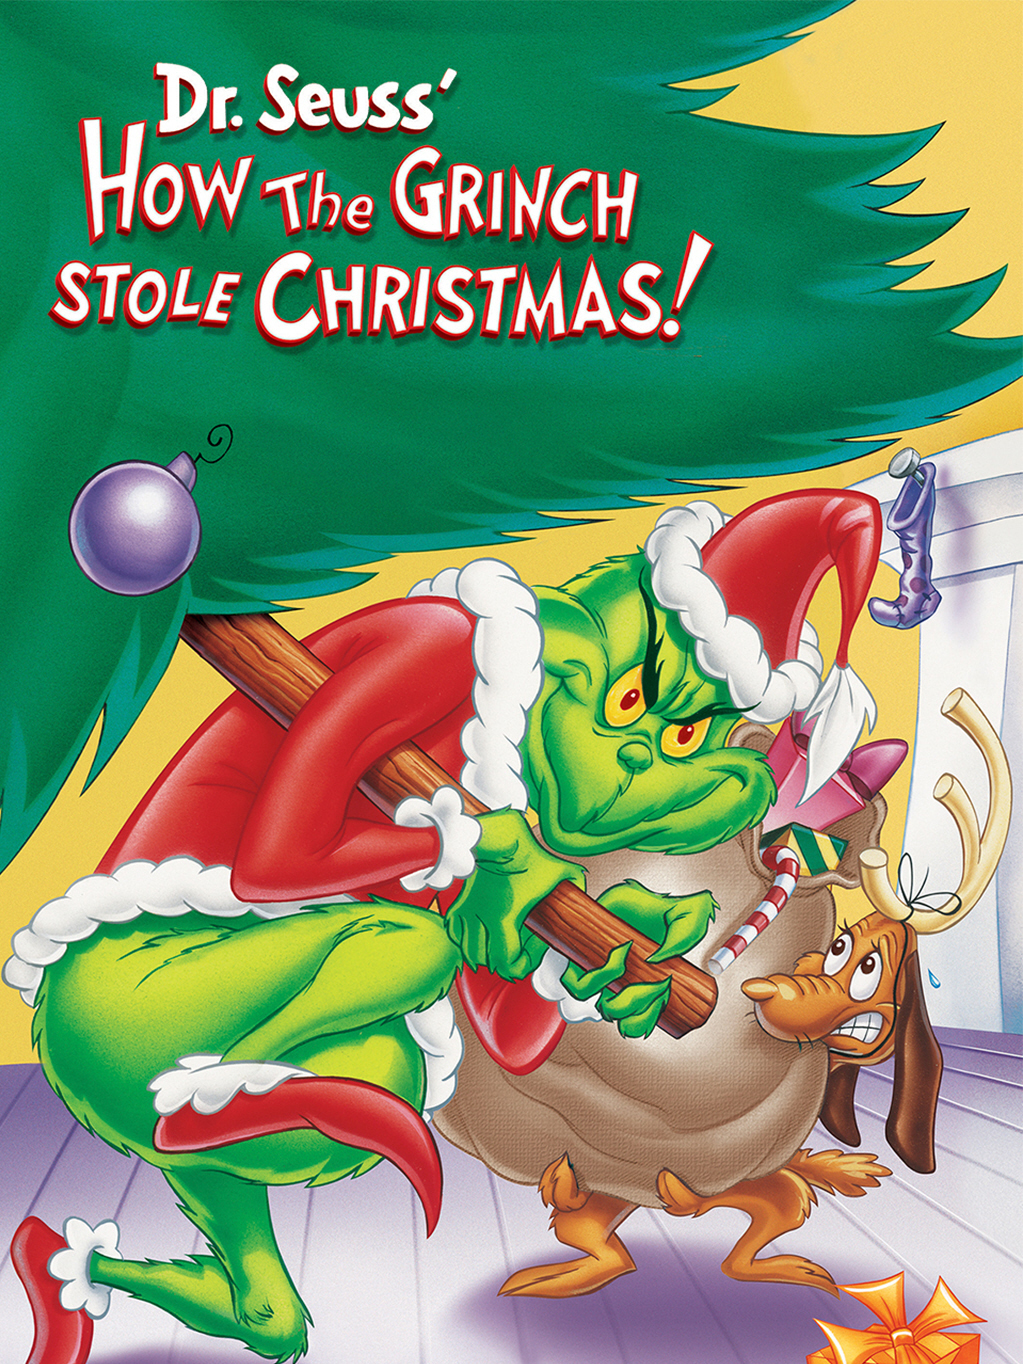 How The Grinch Stole Christmas 1966 Movie Poster.How The Grinch Stole Christmas Tv Special Grinch Wiki